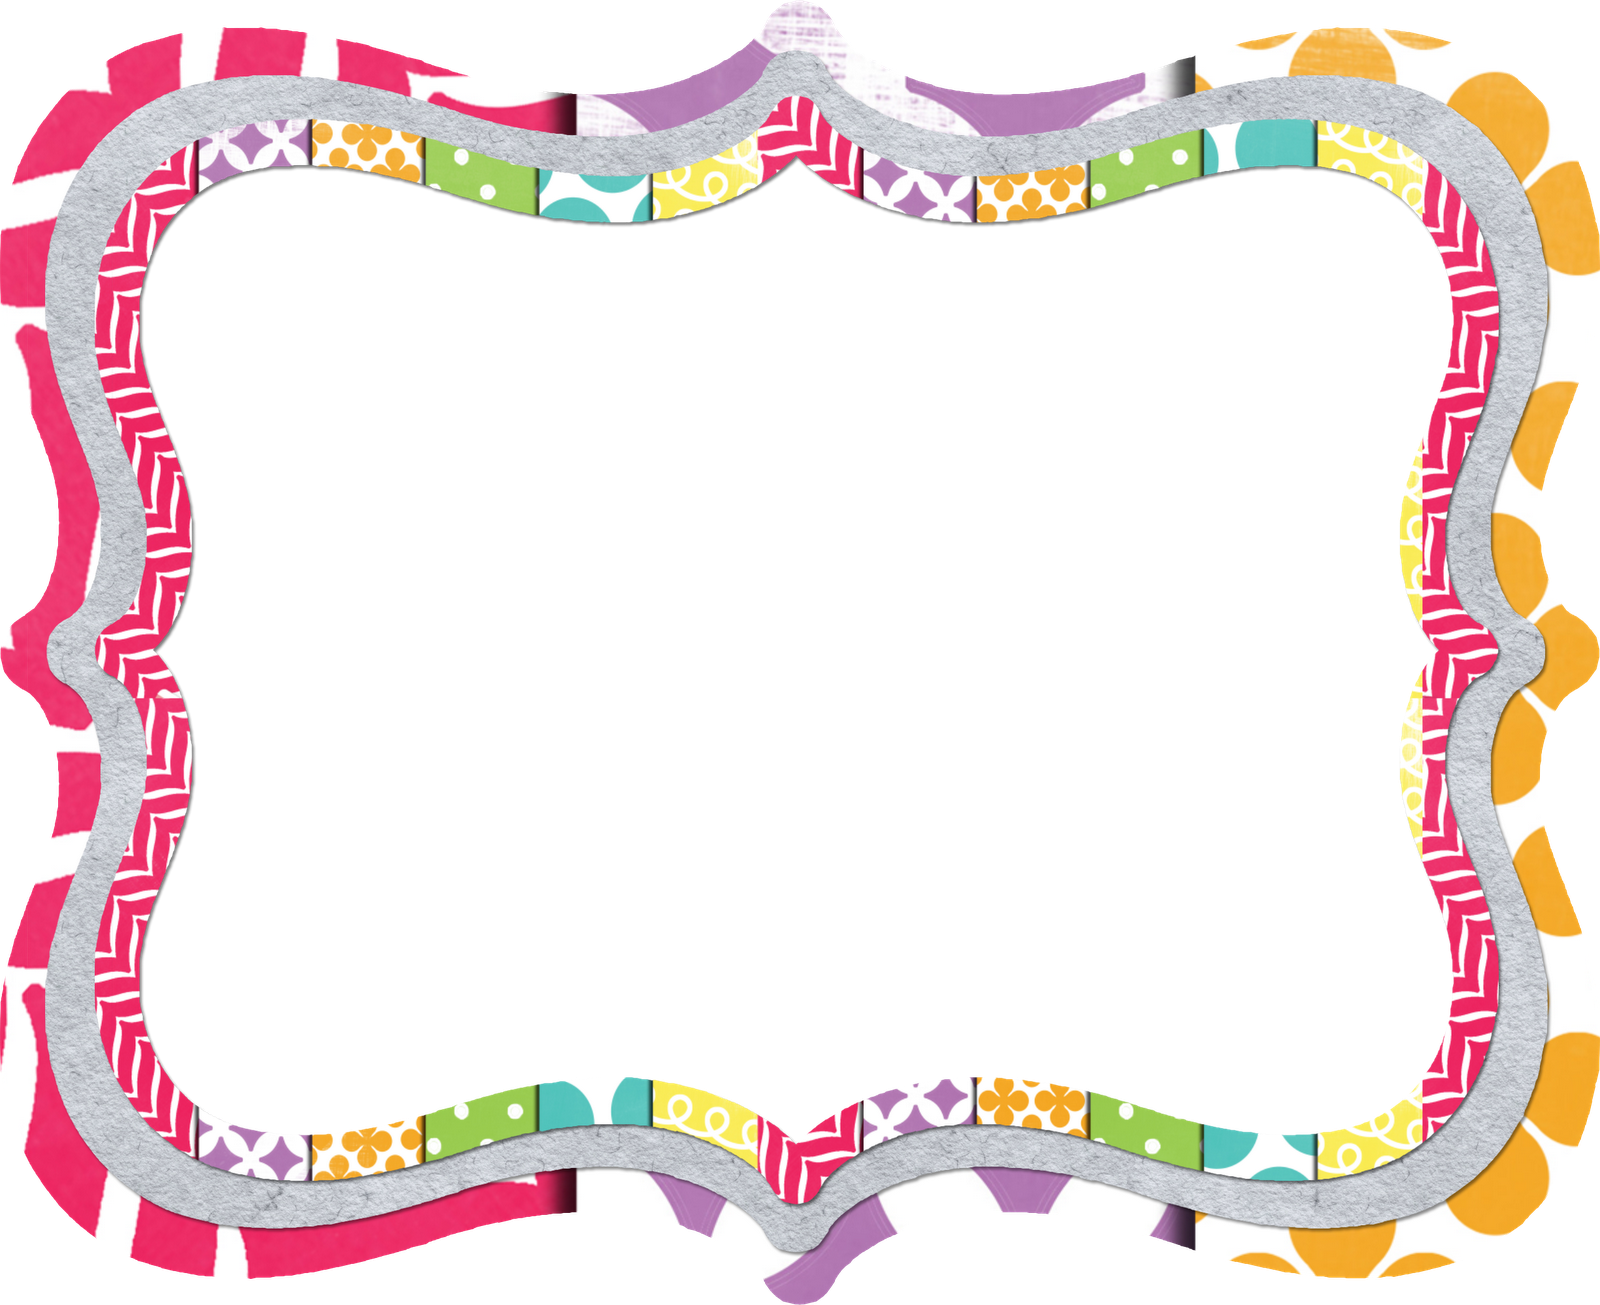 The am teacher happy. Clipart bunny frame